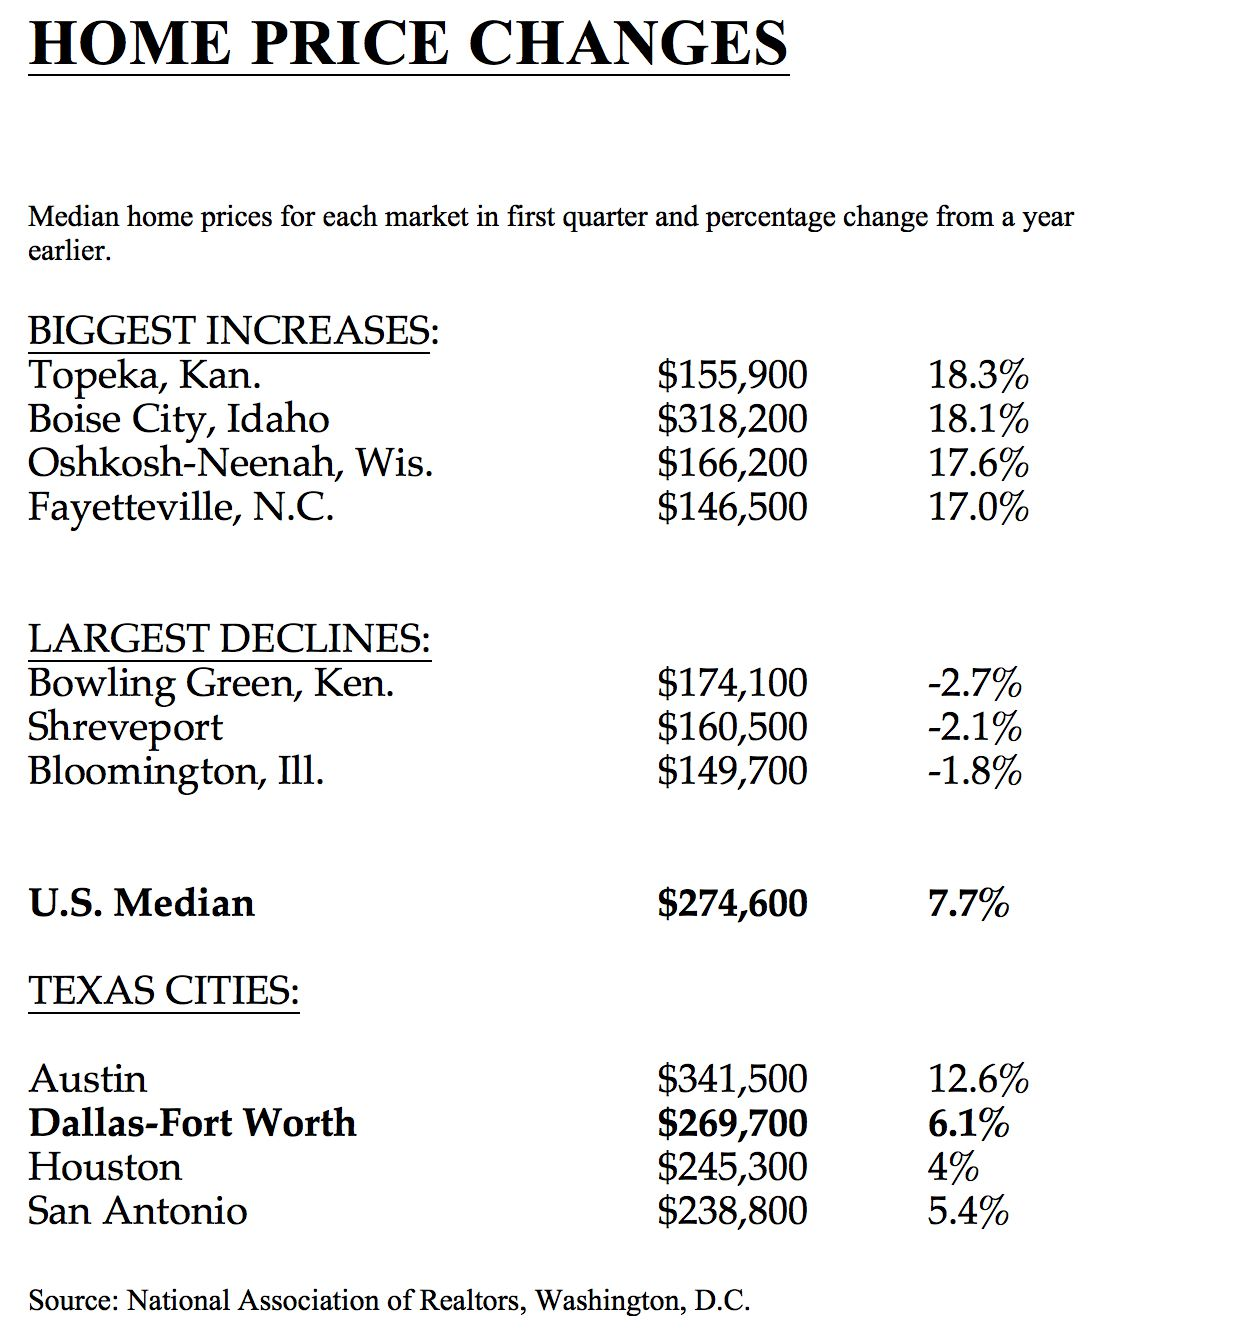 Nationwide home prices were 7.7% higher in the first quarter.